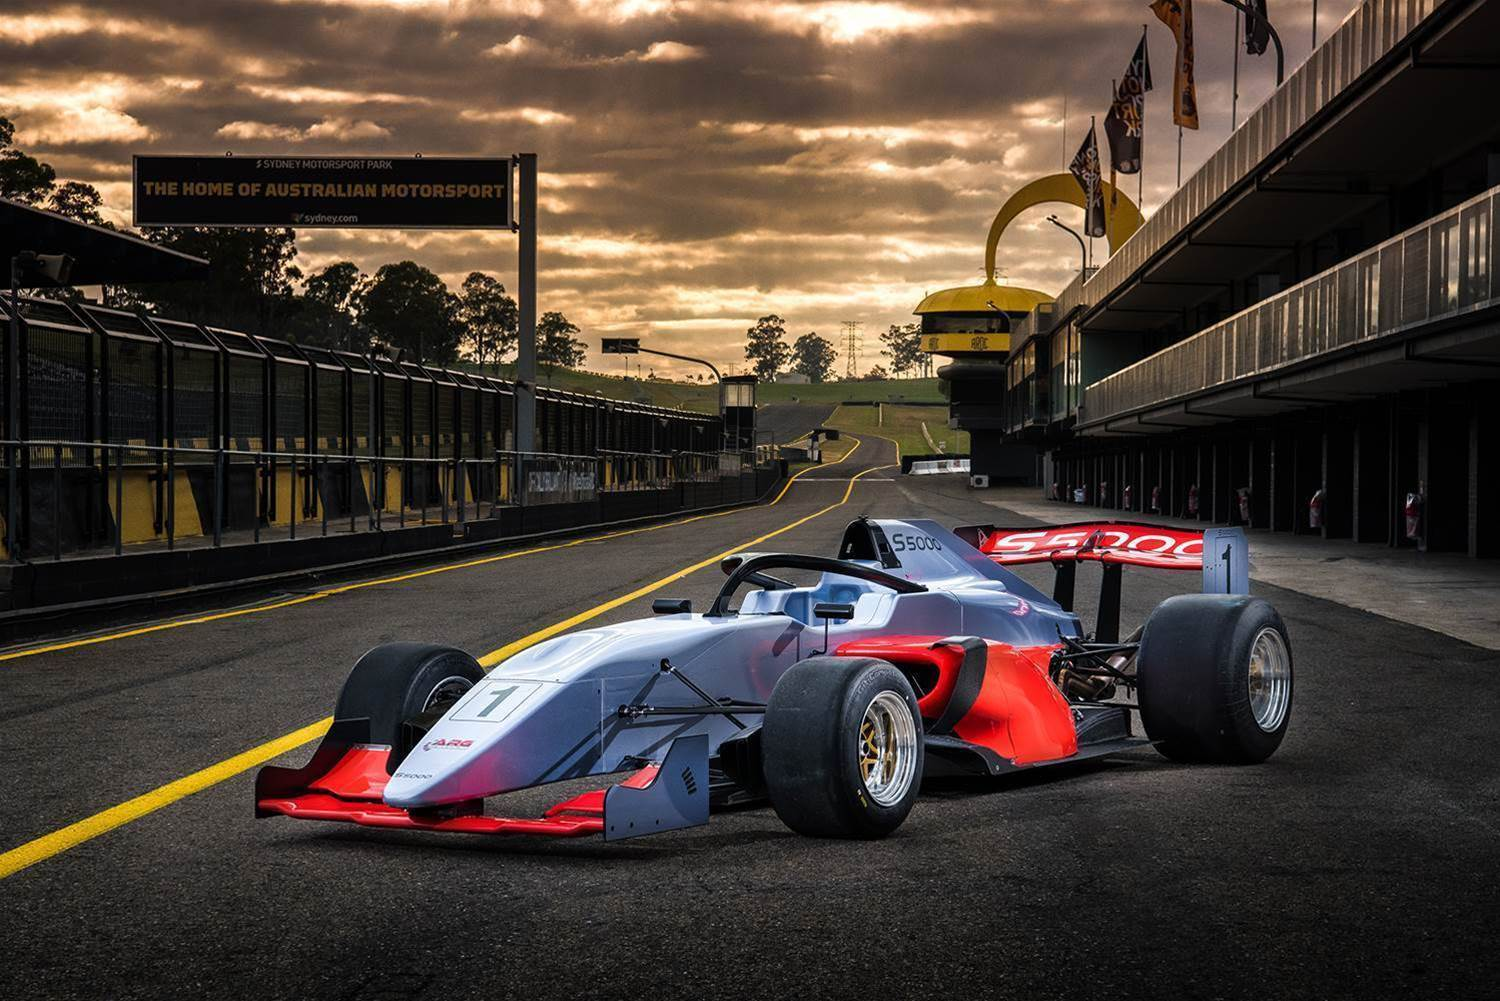 S5000 super openwheeler formula launched in Sydney